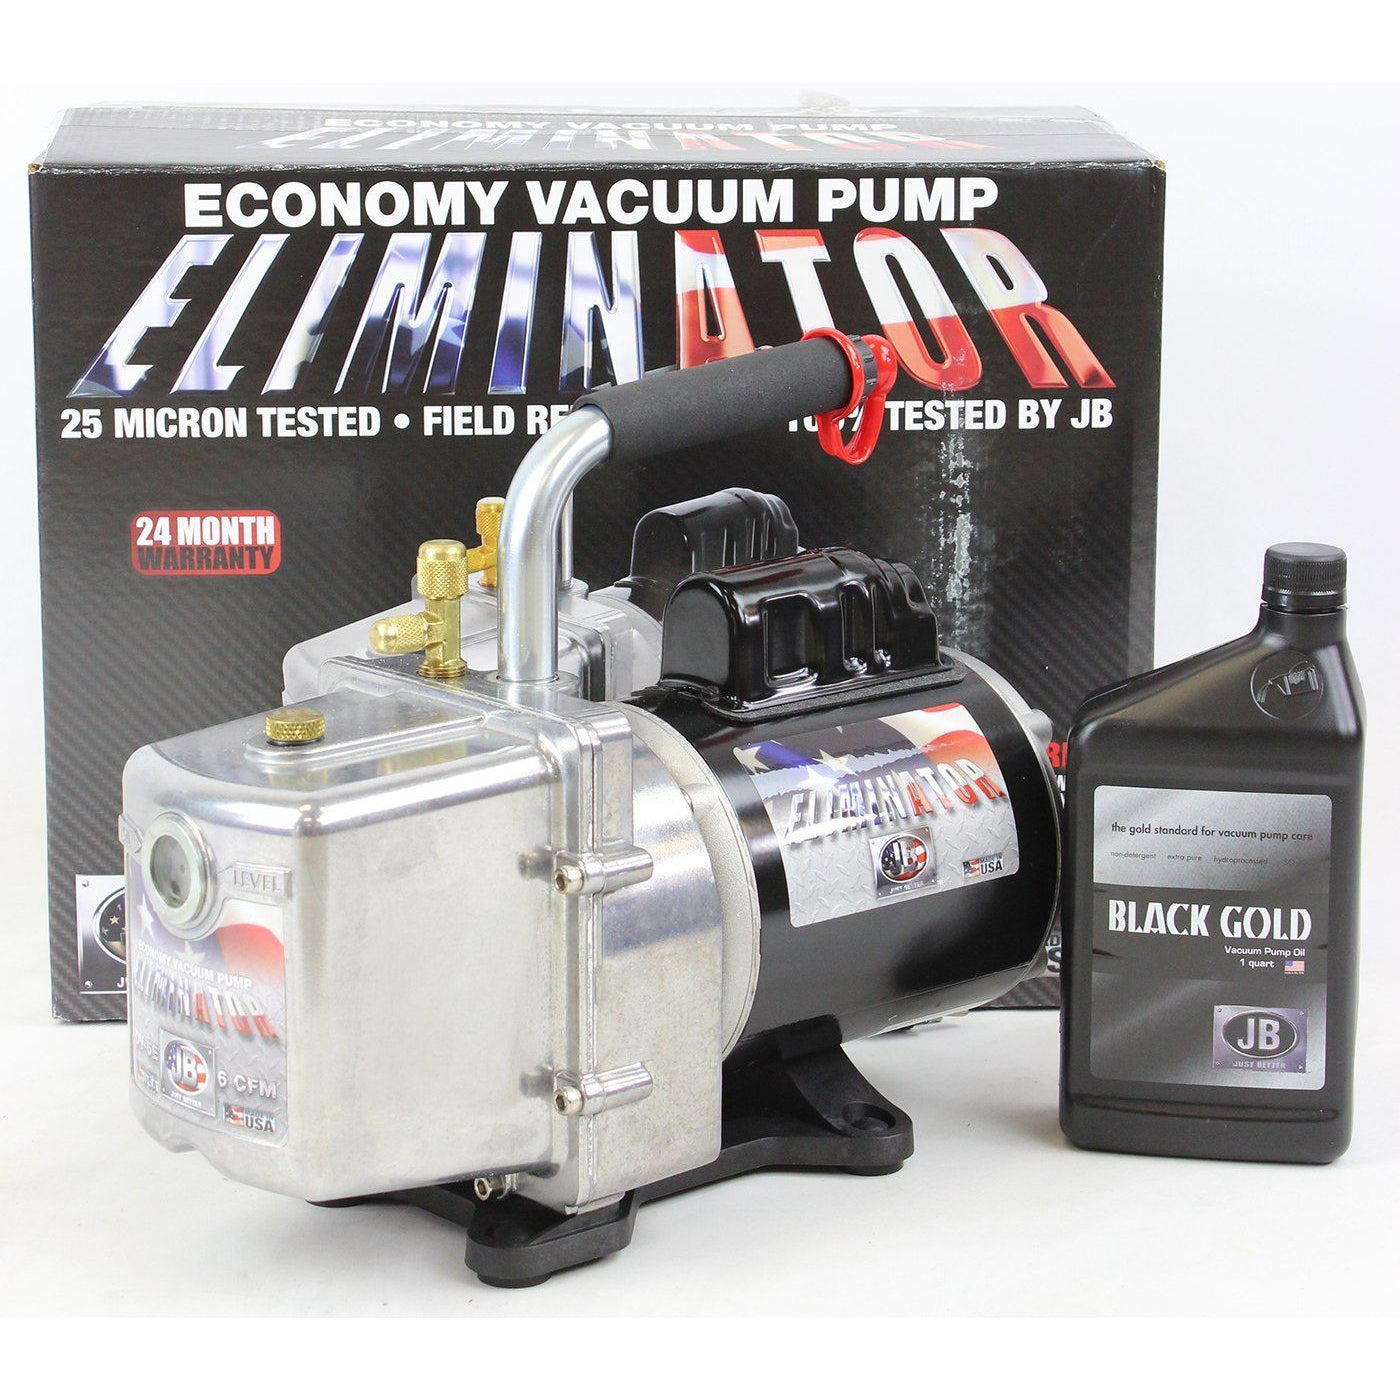 Just Better 6 CFM 2 Stage Deep Vacuum Pump - USA Made Shop All Categories JB Industries